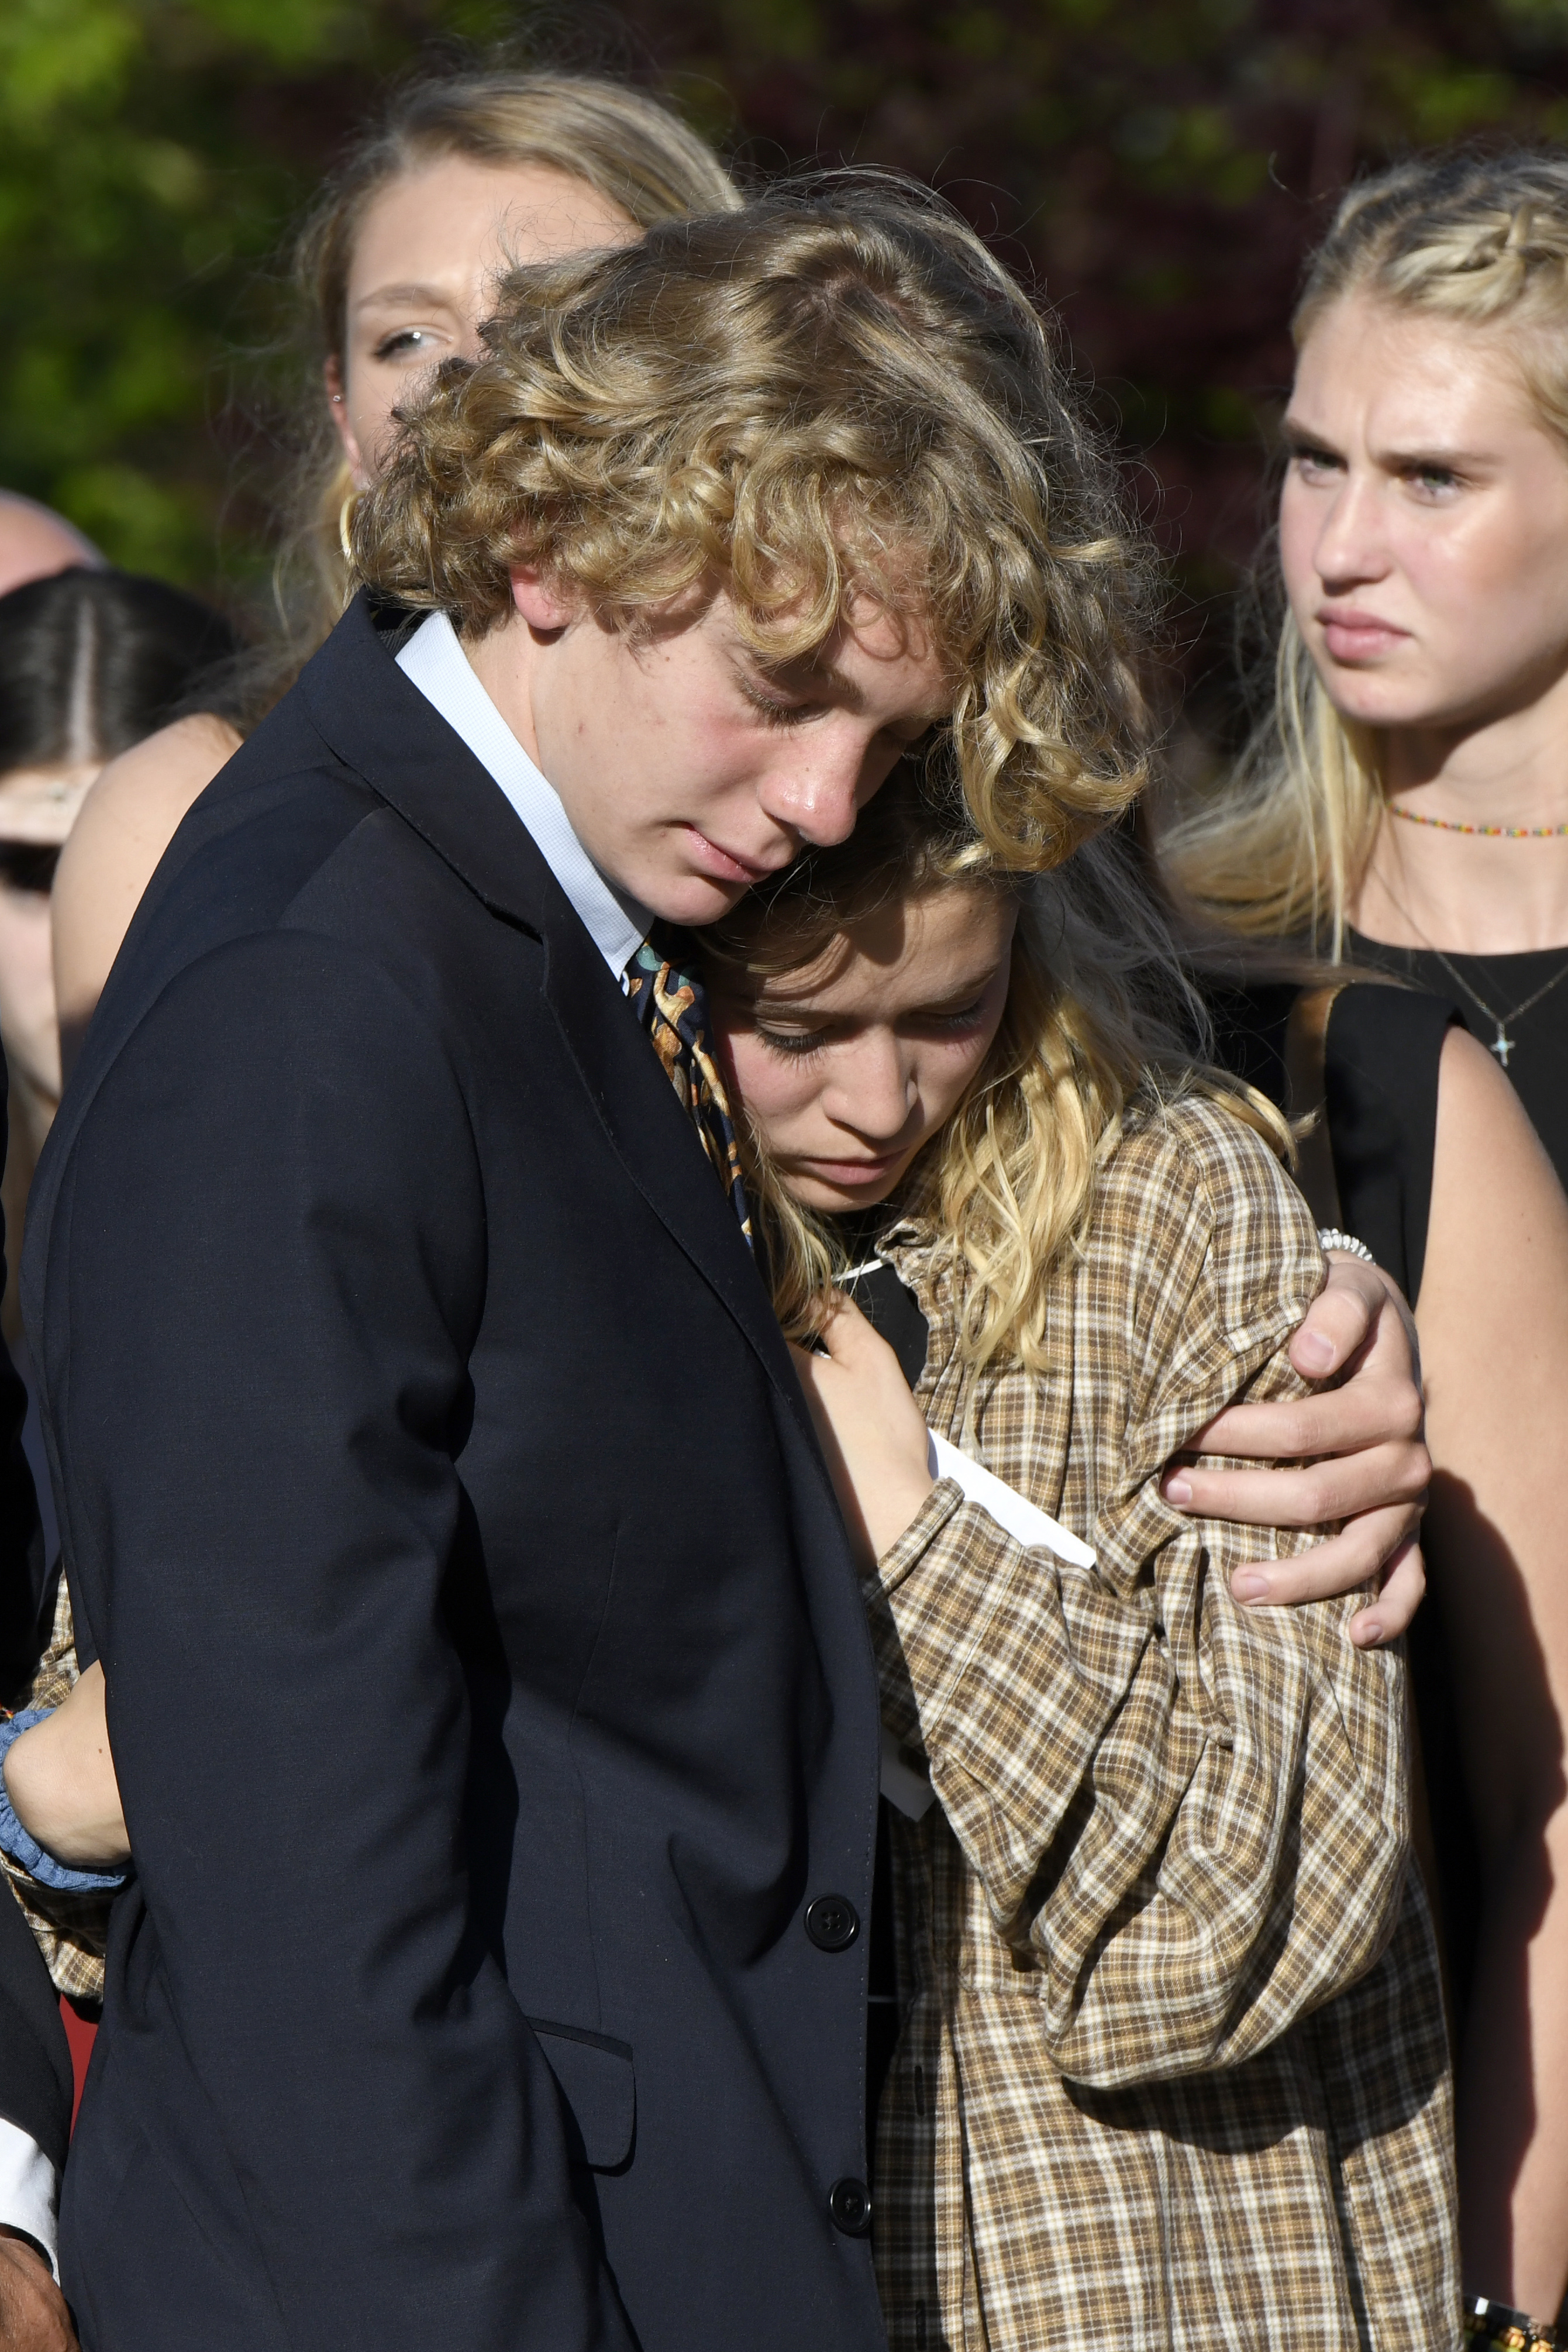 Riley Howell's brother, Teddy Howell, and girlfriend, Lauren Westmoreland, comfort each other after a memorial service f in Lake Junaluska, N.C., on May 5, 2019.